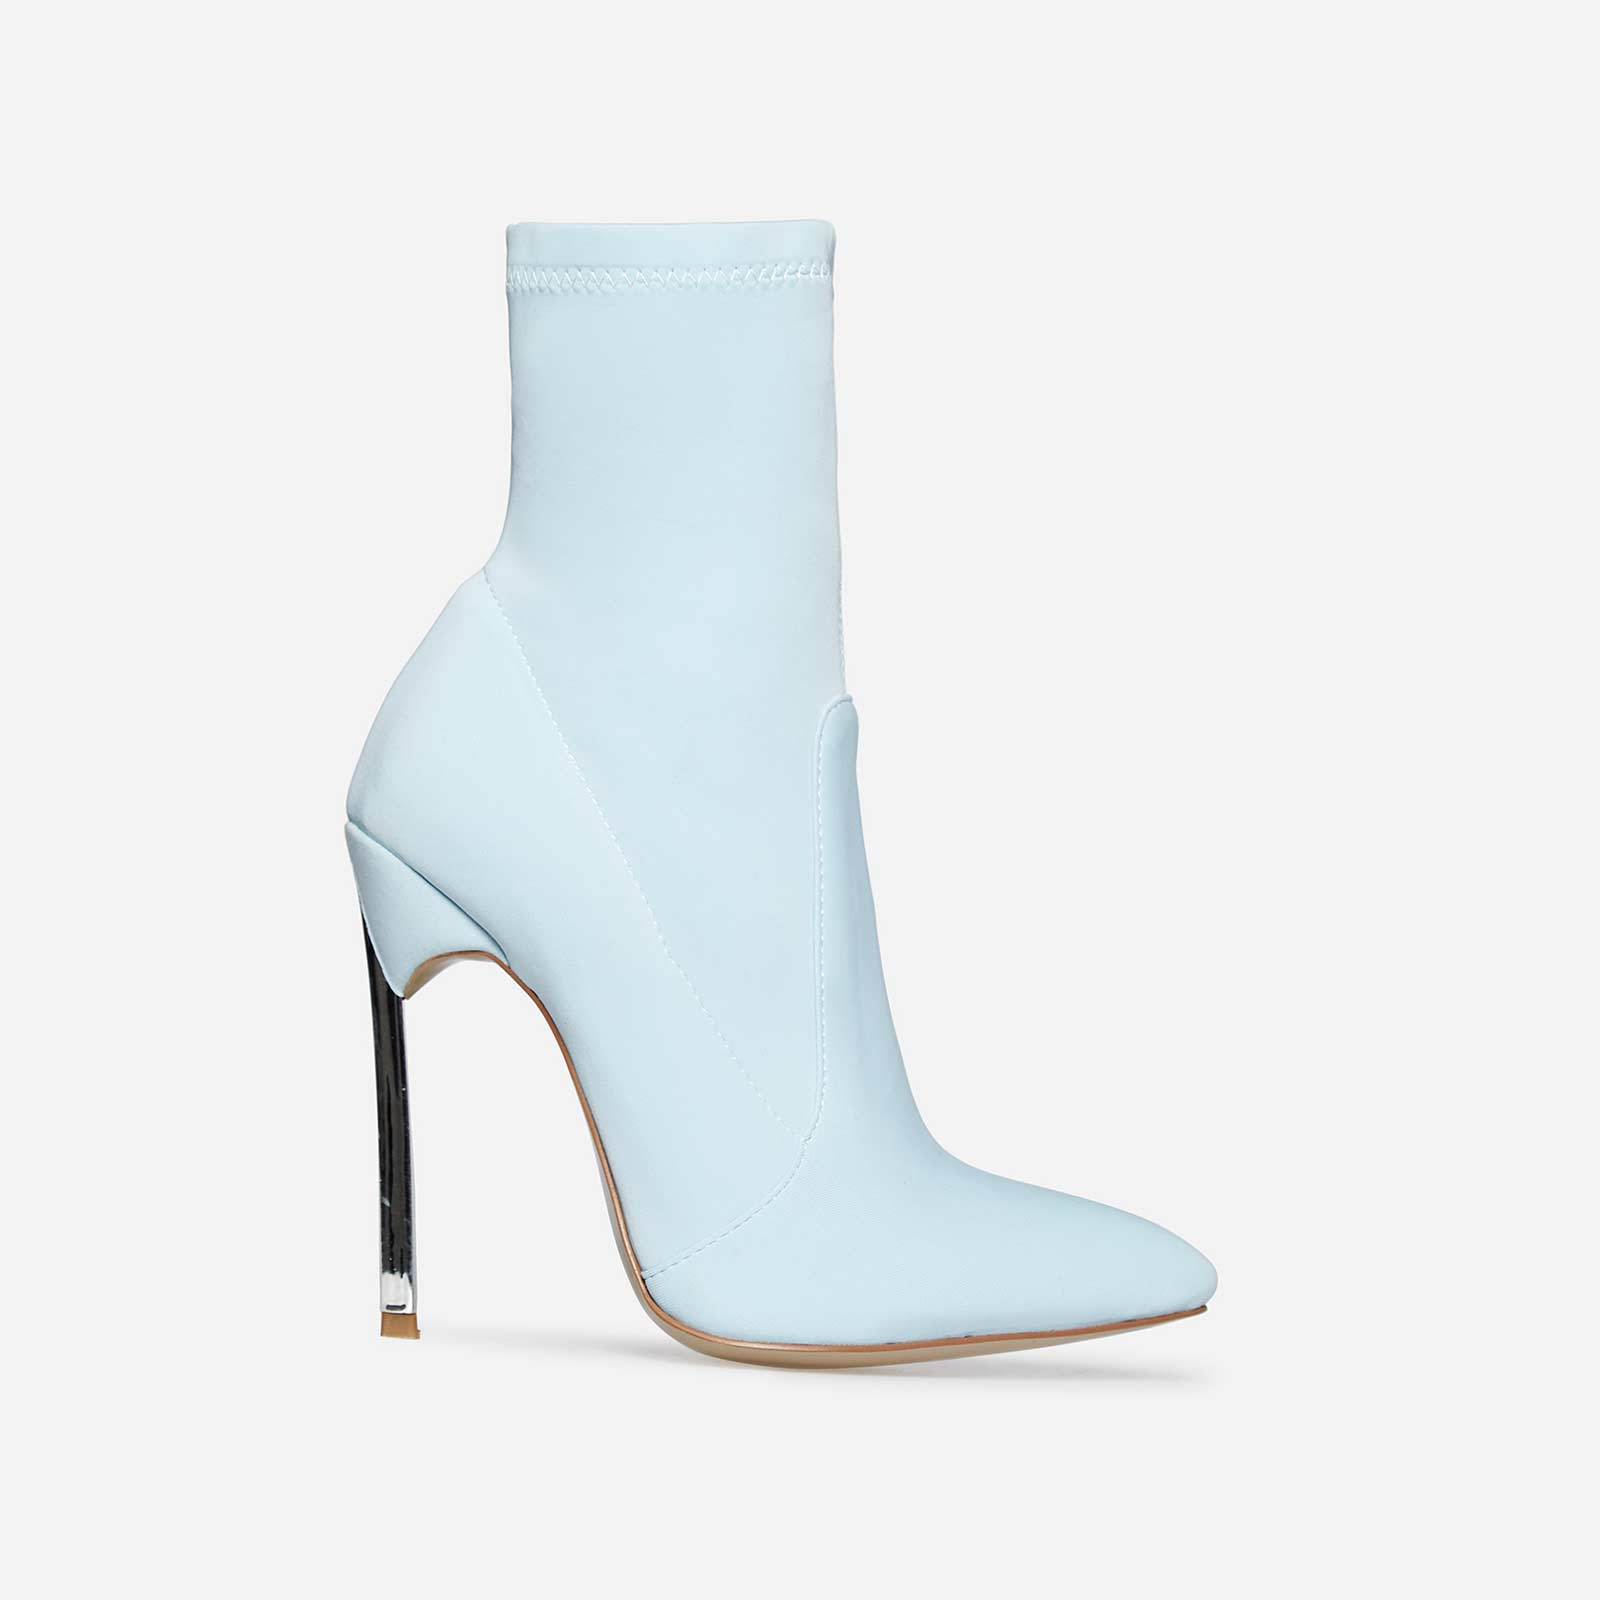 Ava Skinny Heel Pointed Toe Sock Boot In Pastel Blue Lycra